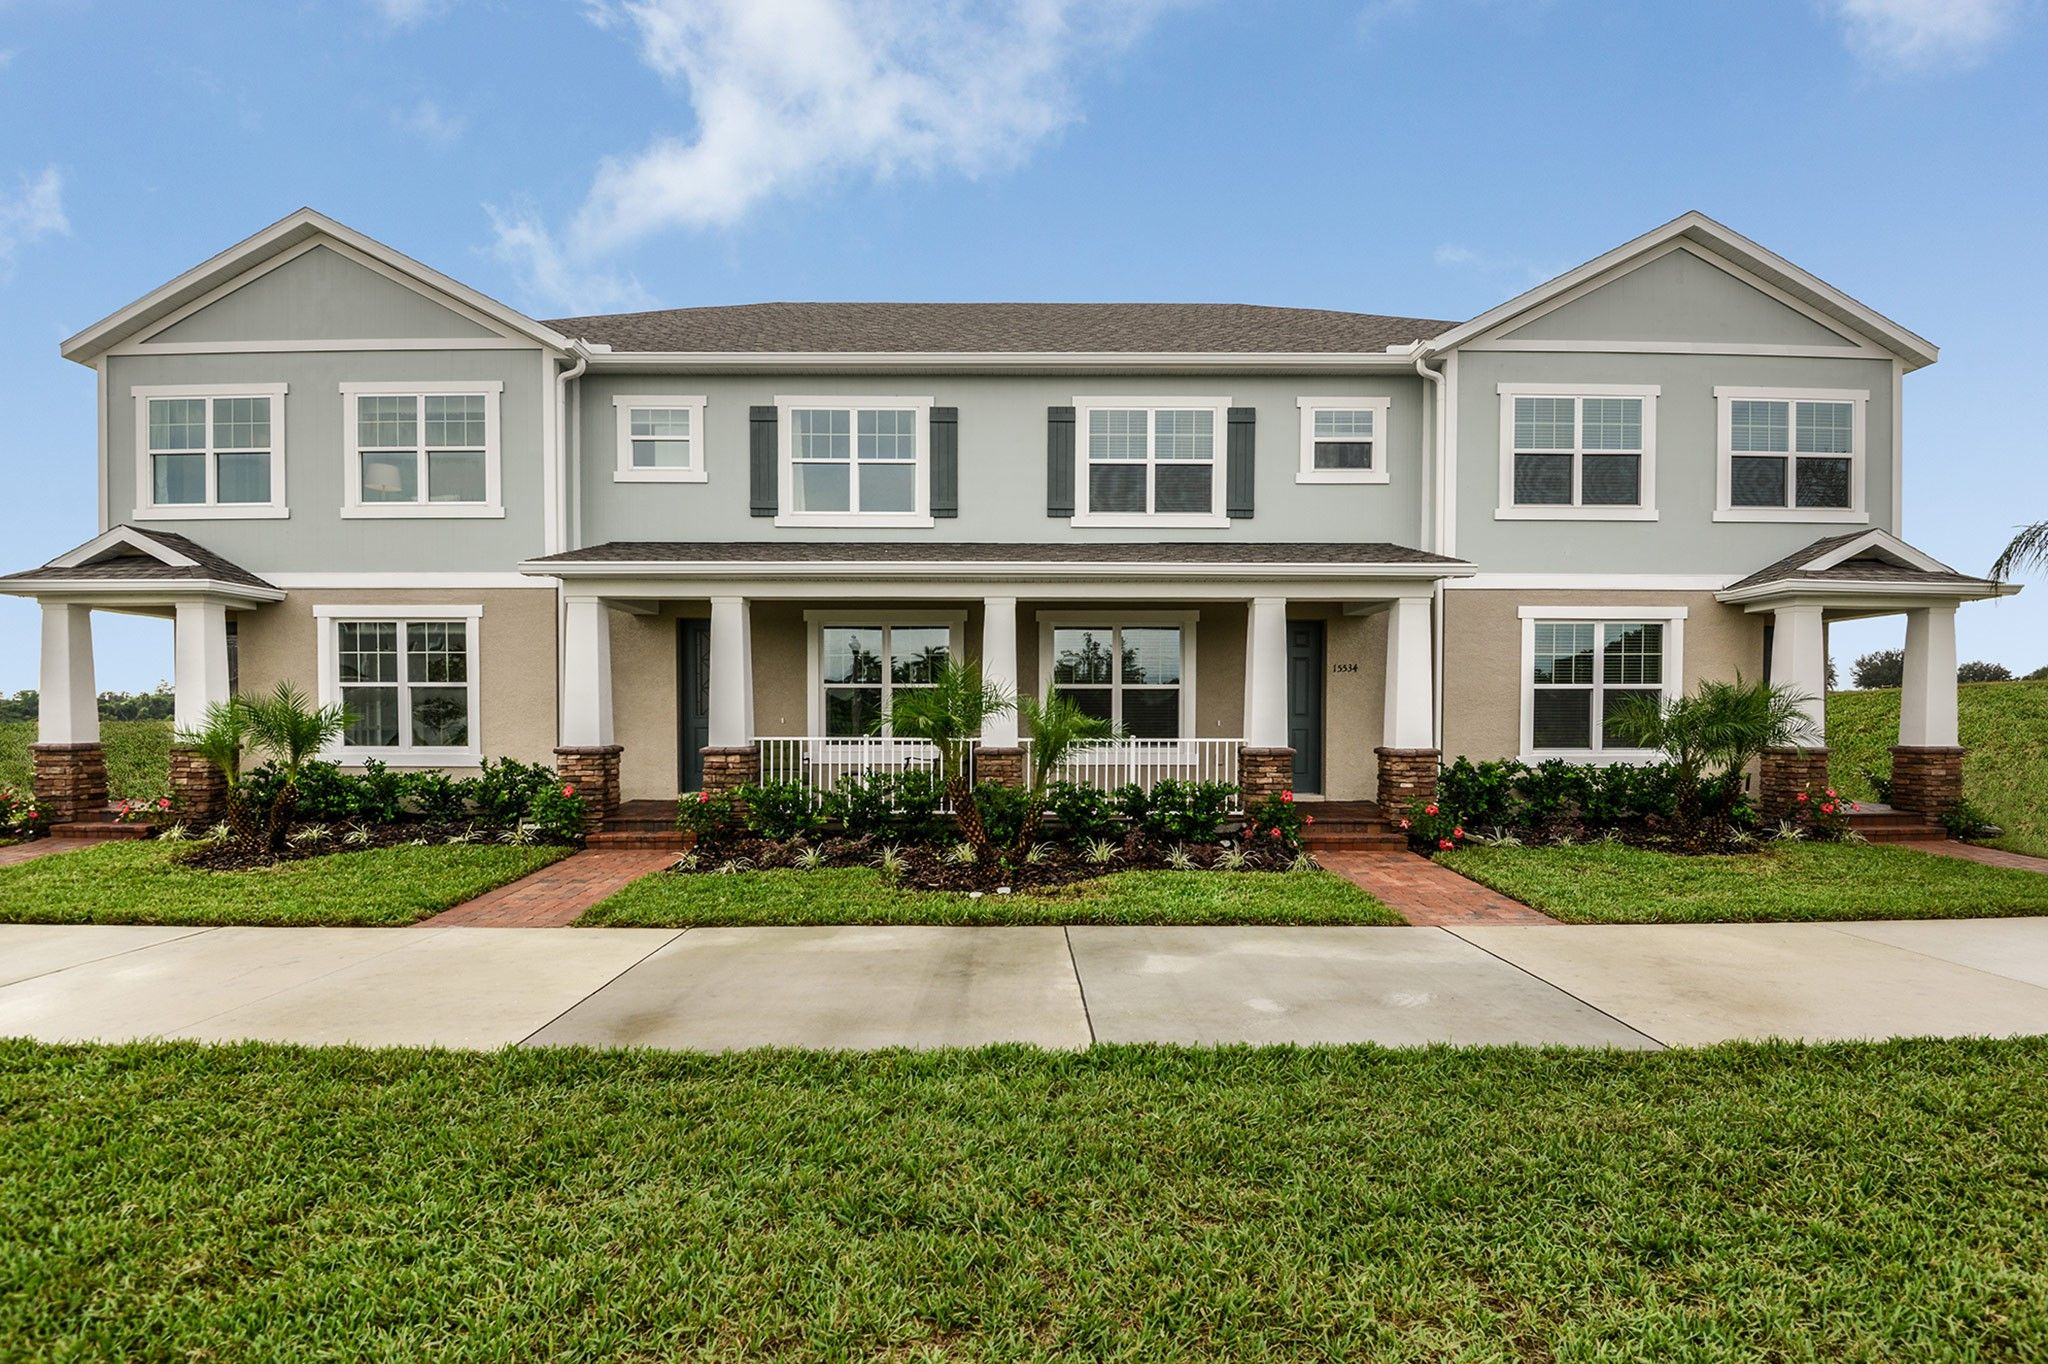 Photo Of The Highlands At Summerlake Groves Townhomes In Winter Garden, FL  34787